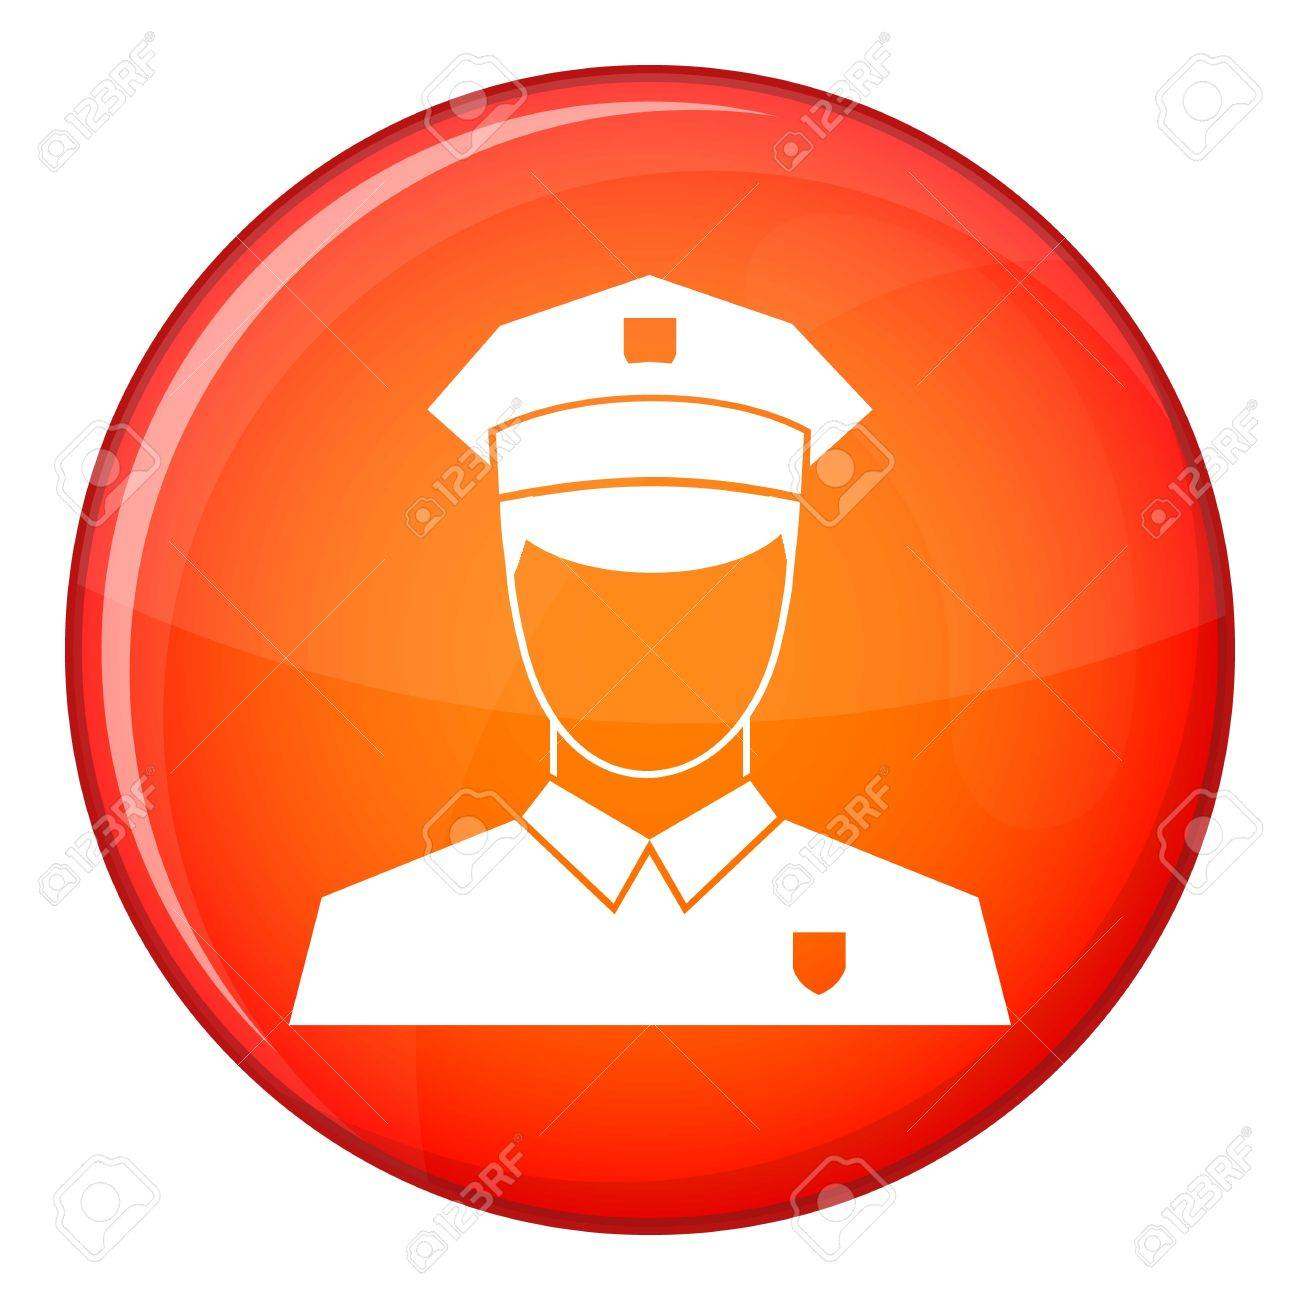 f2e63389ae041 Pilot icon in red circle isolated on white background vector illustration  Stock Vector - 67622072